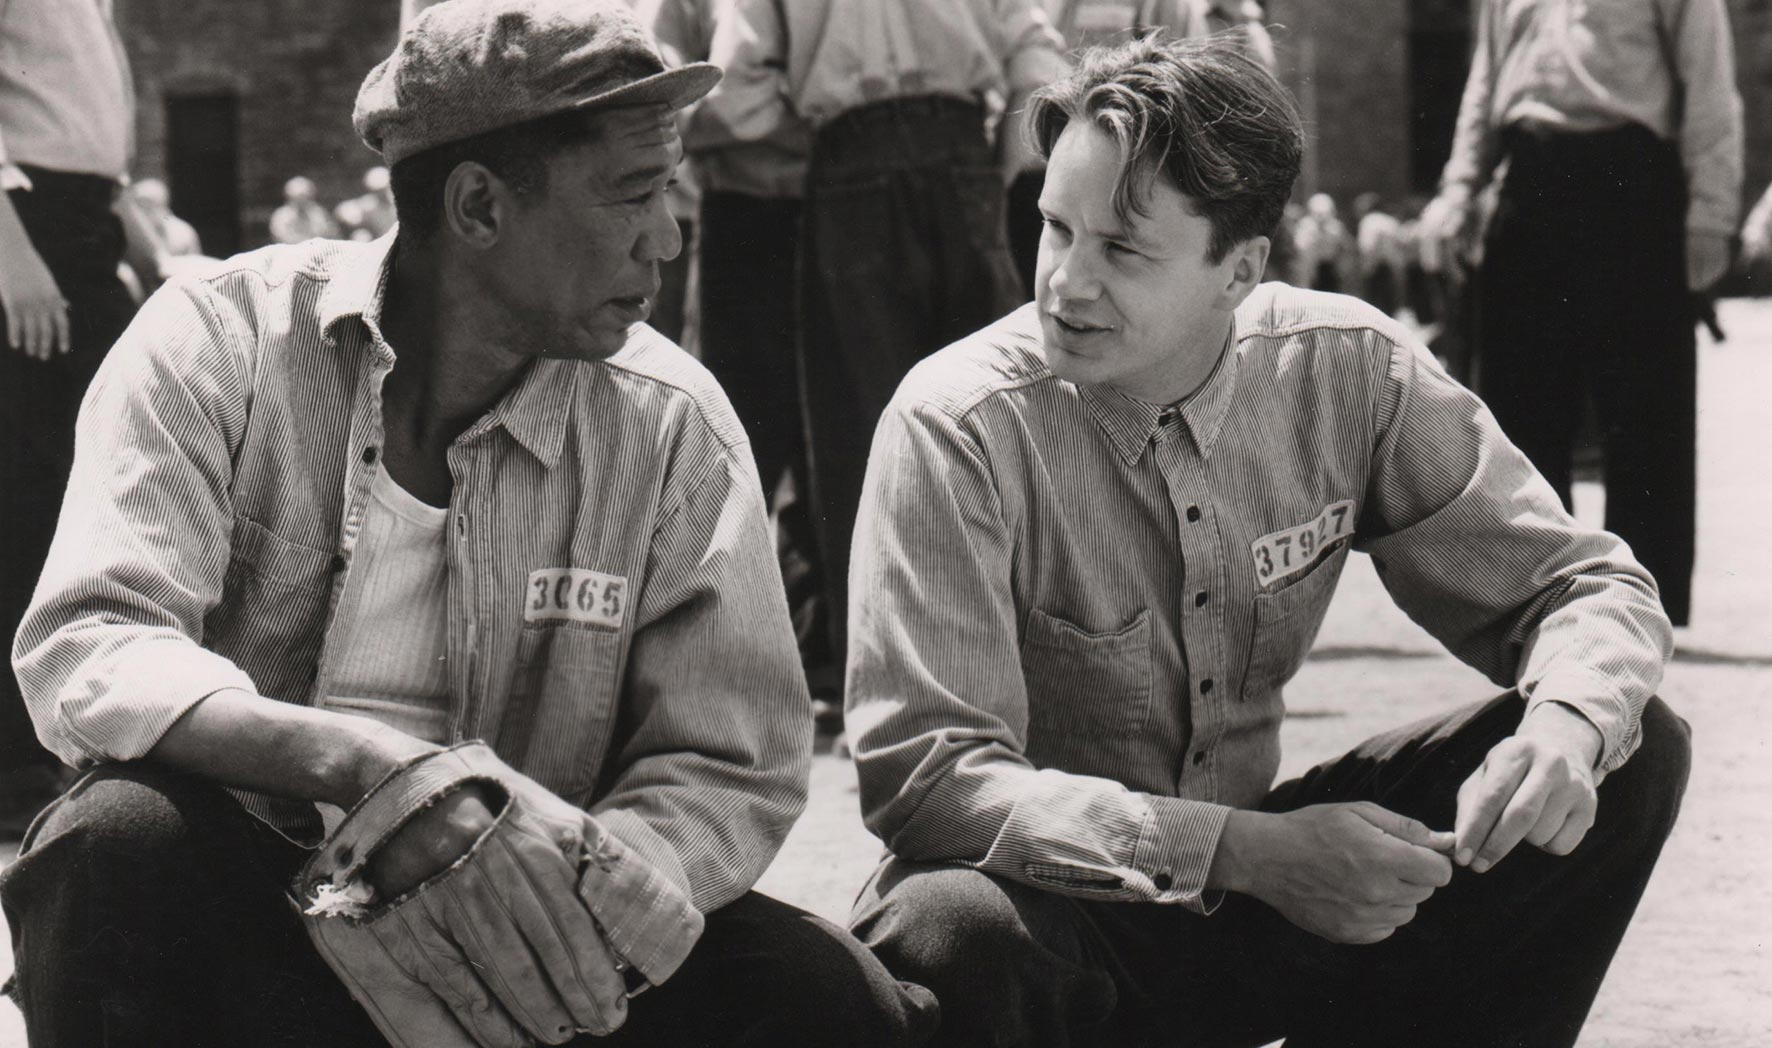 The Shawshank Redemption (1994) | Columbus Association for the Performing Arts